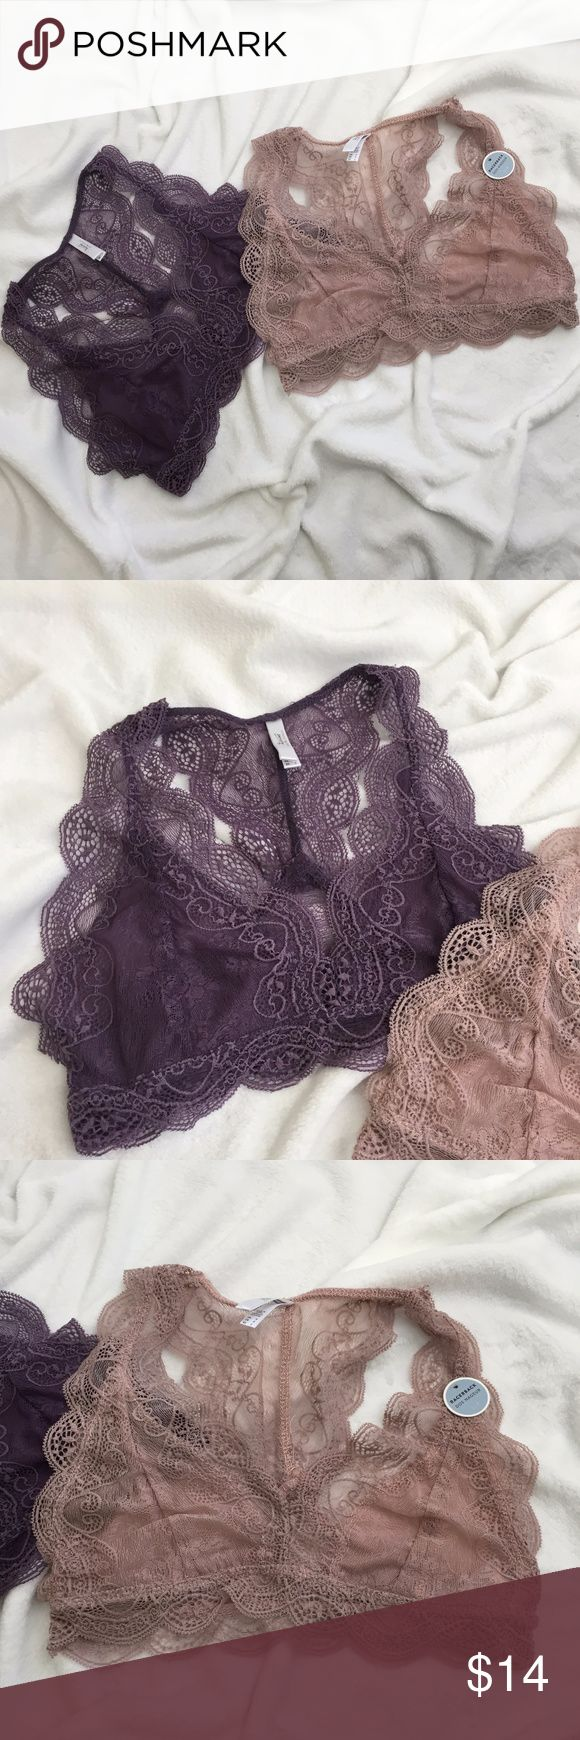 Urban Planet Urban Planet both NWT Fits true to size $18 for both Urban Planet Intimates & Sleepwear Bras